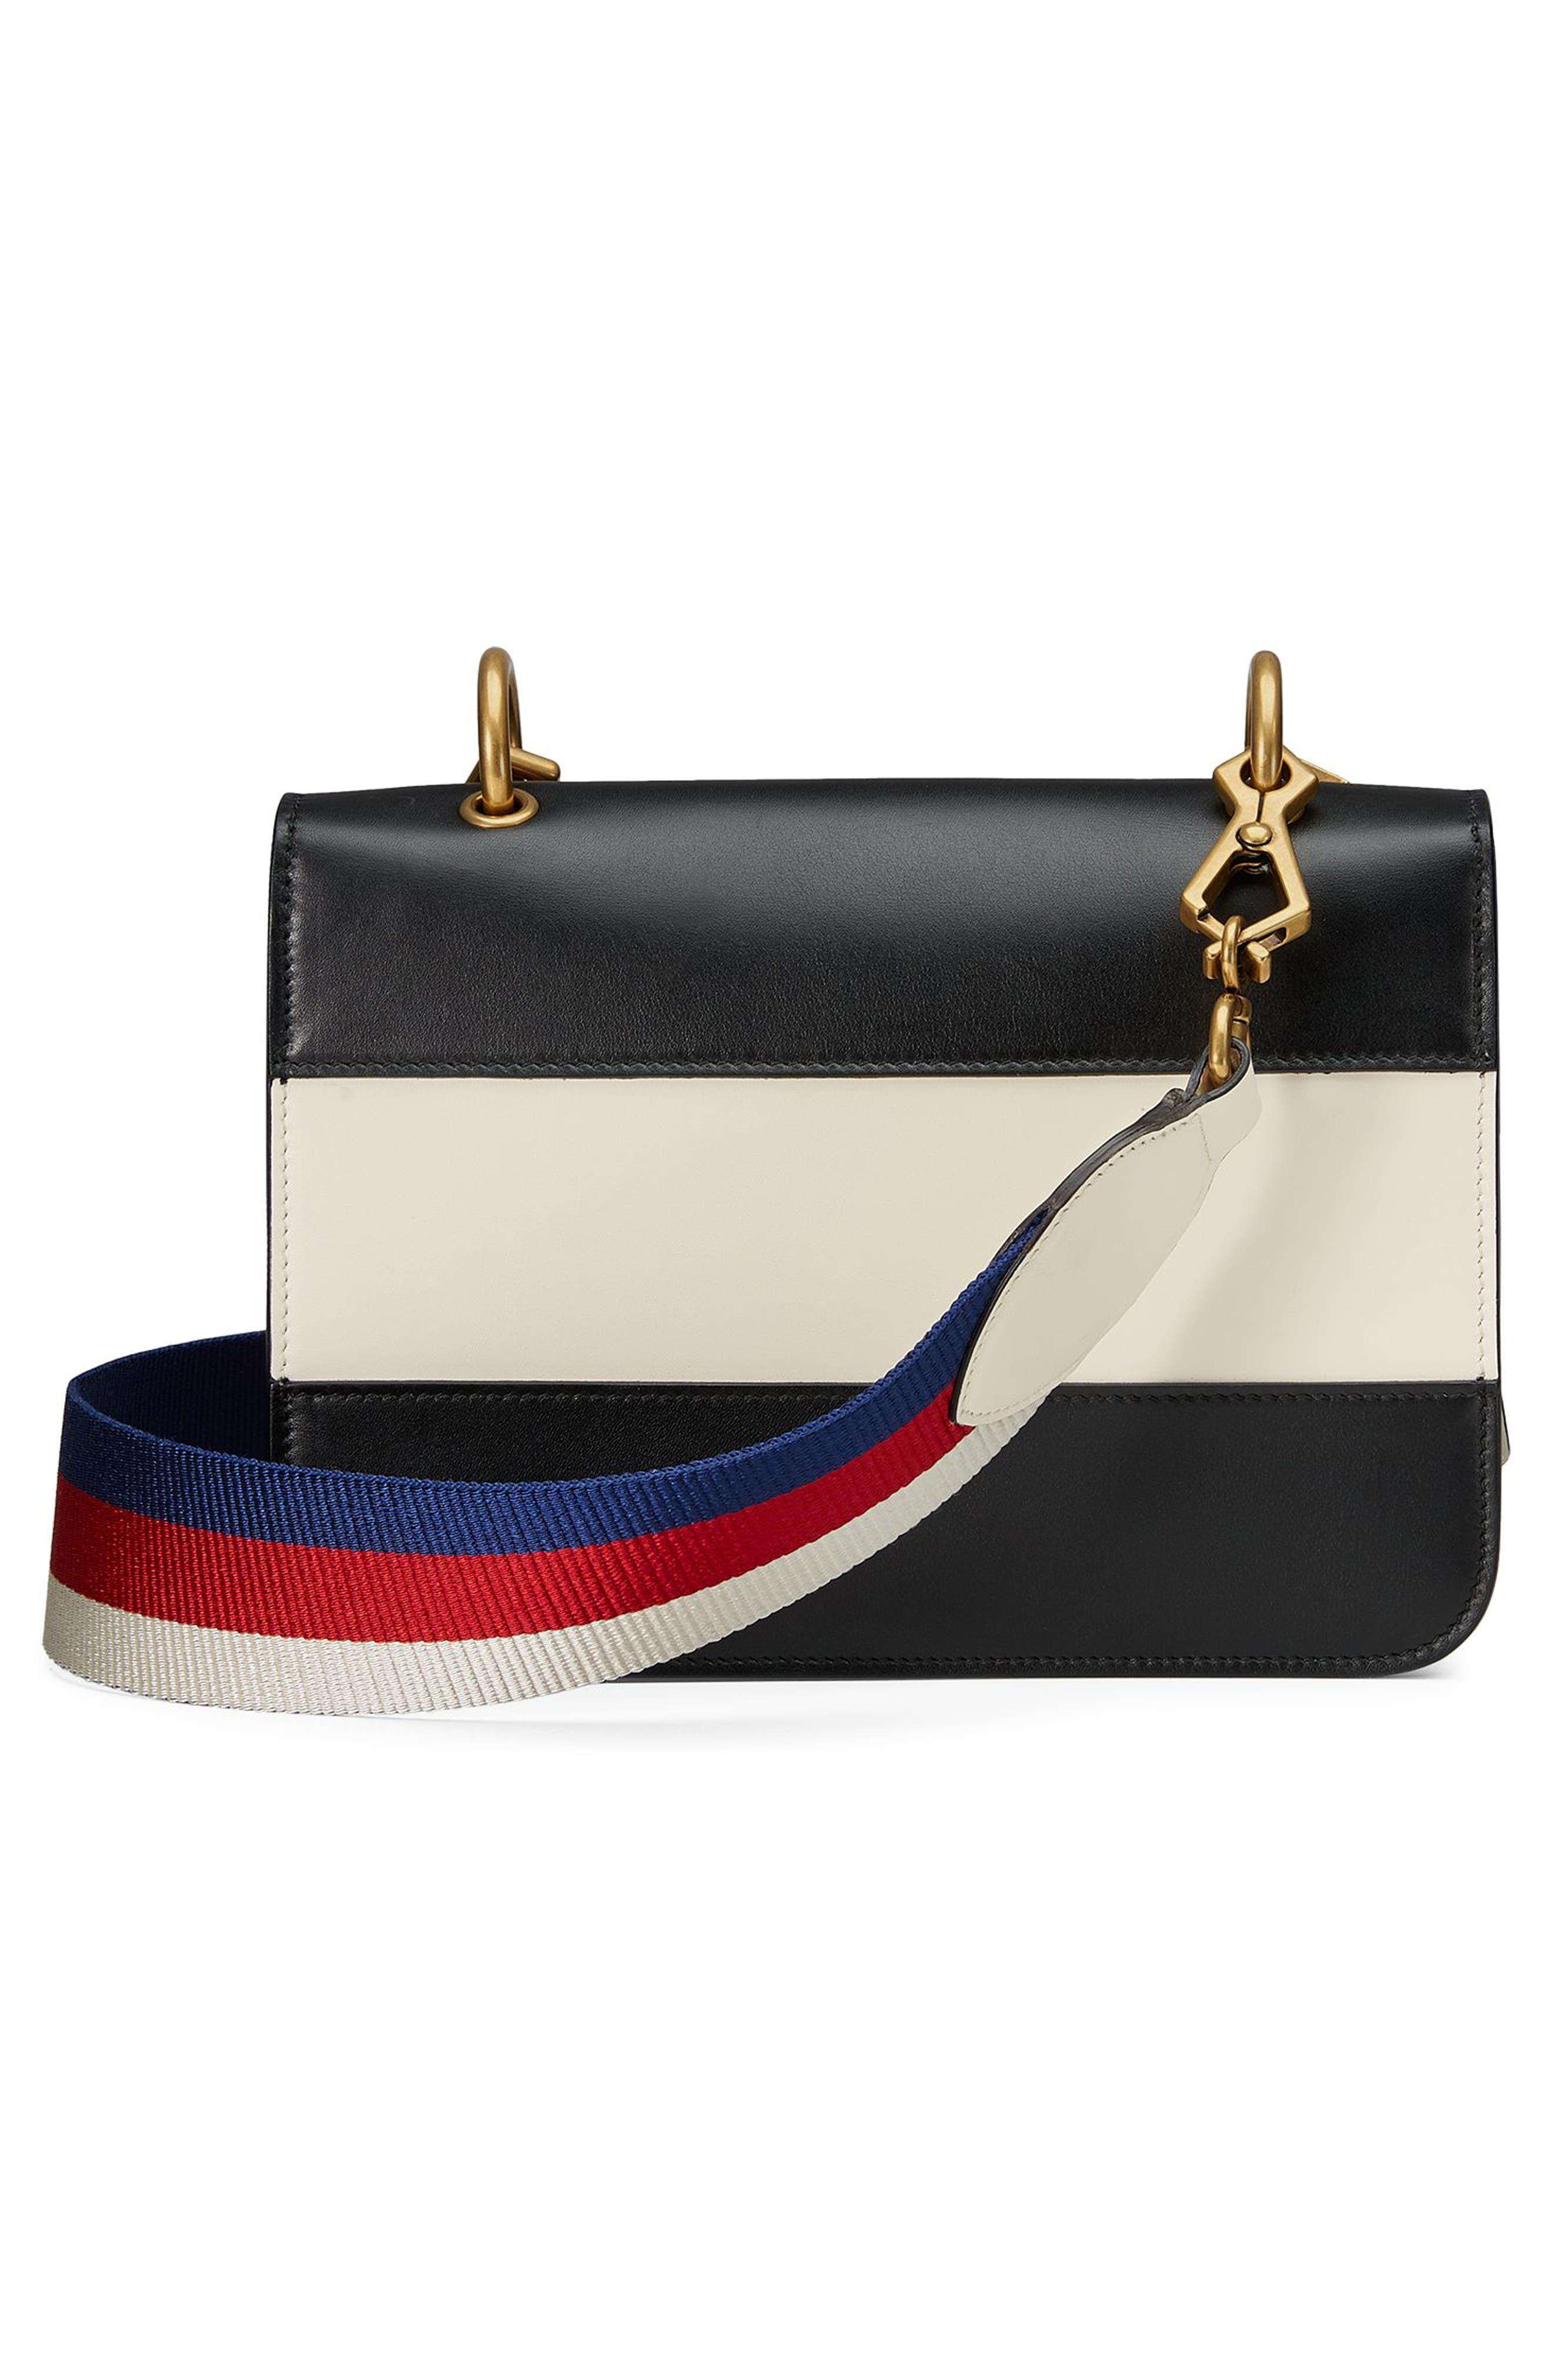 Queen Margaret Stripe Leather Shoulder Bag,                             Alternate thumbnail 2, color,